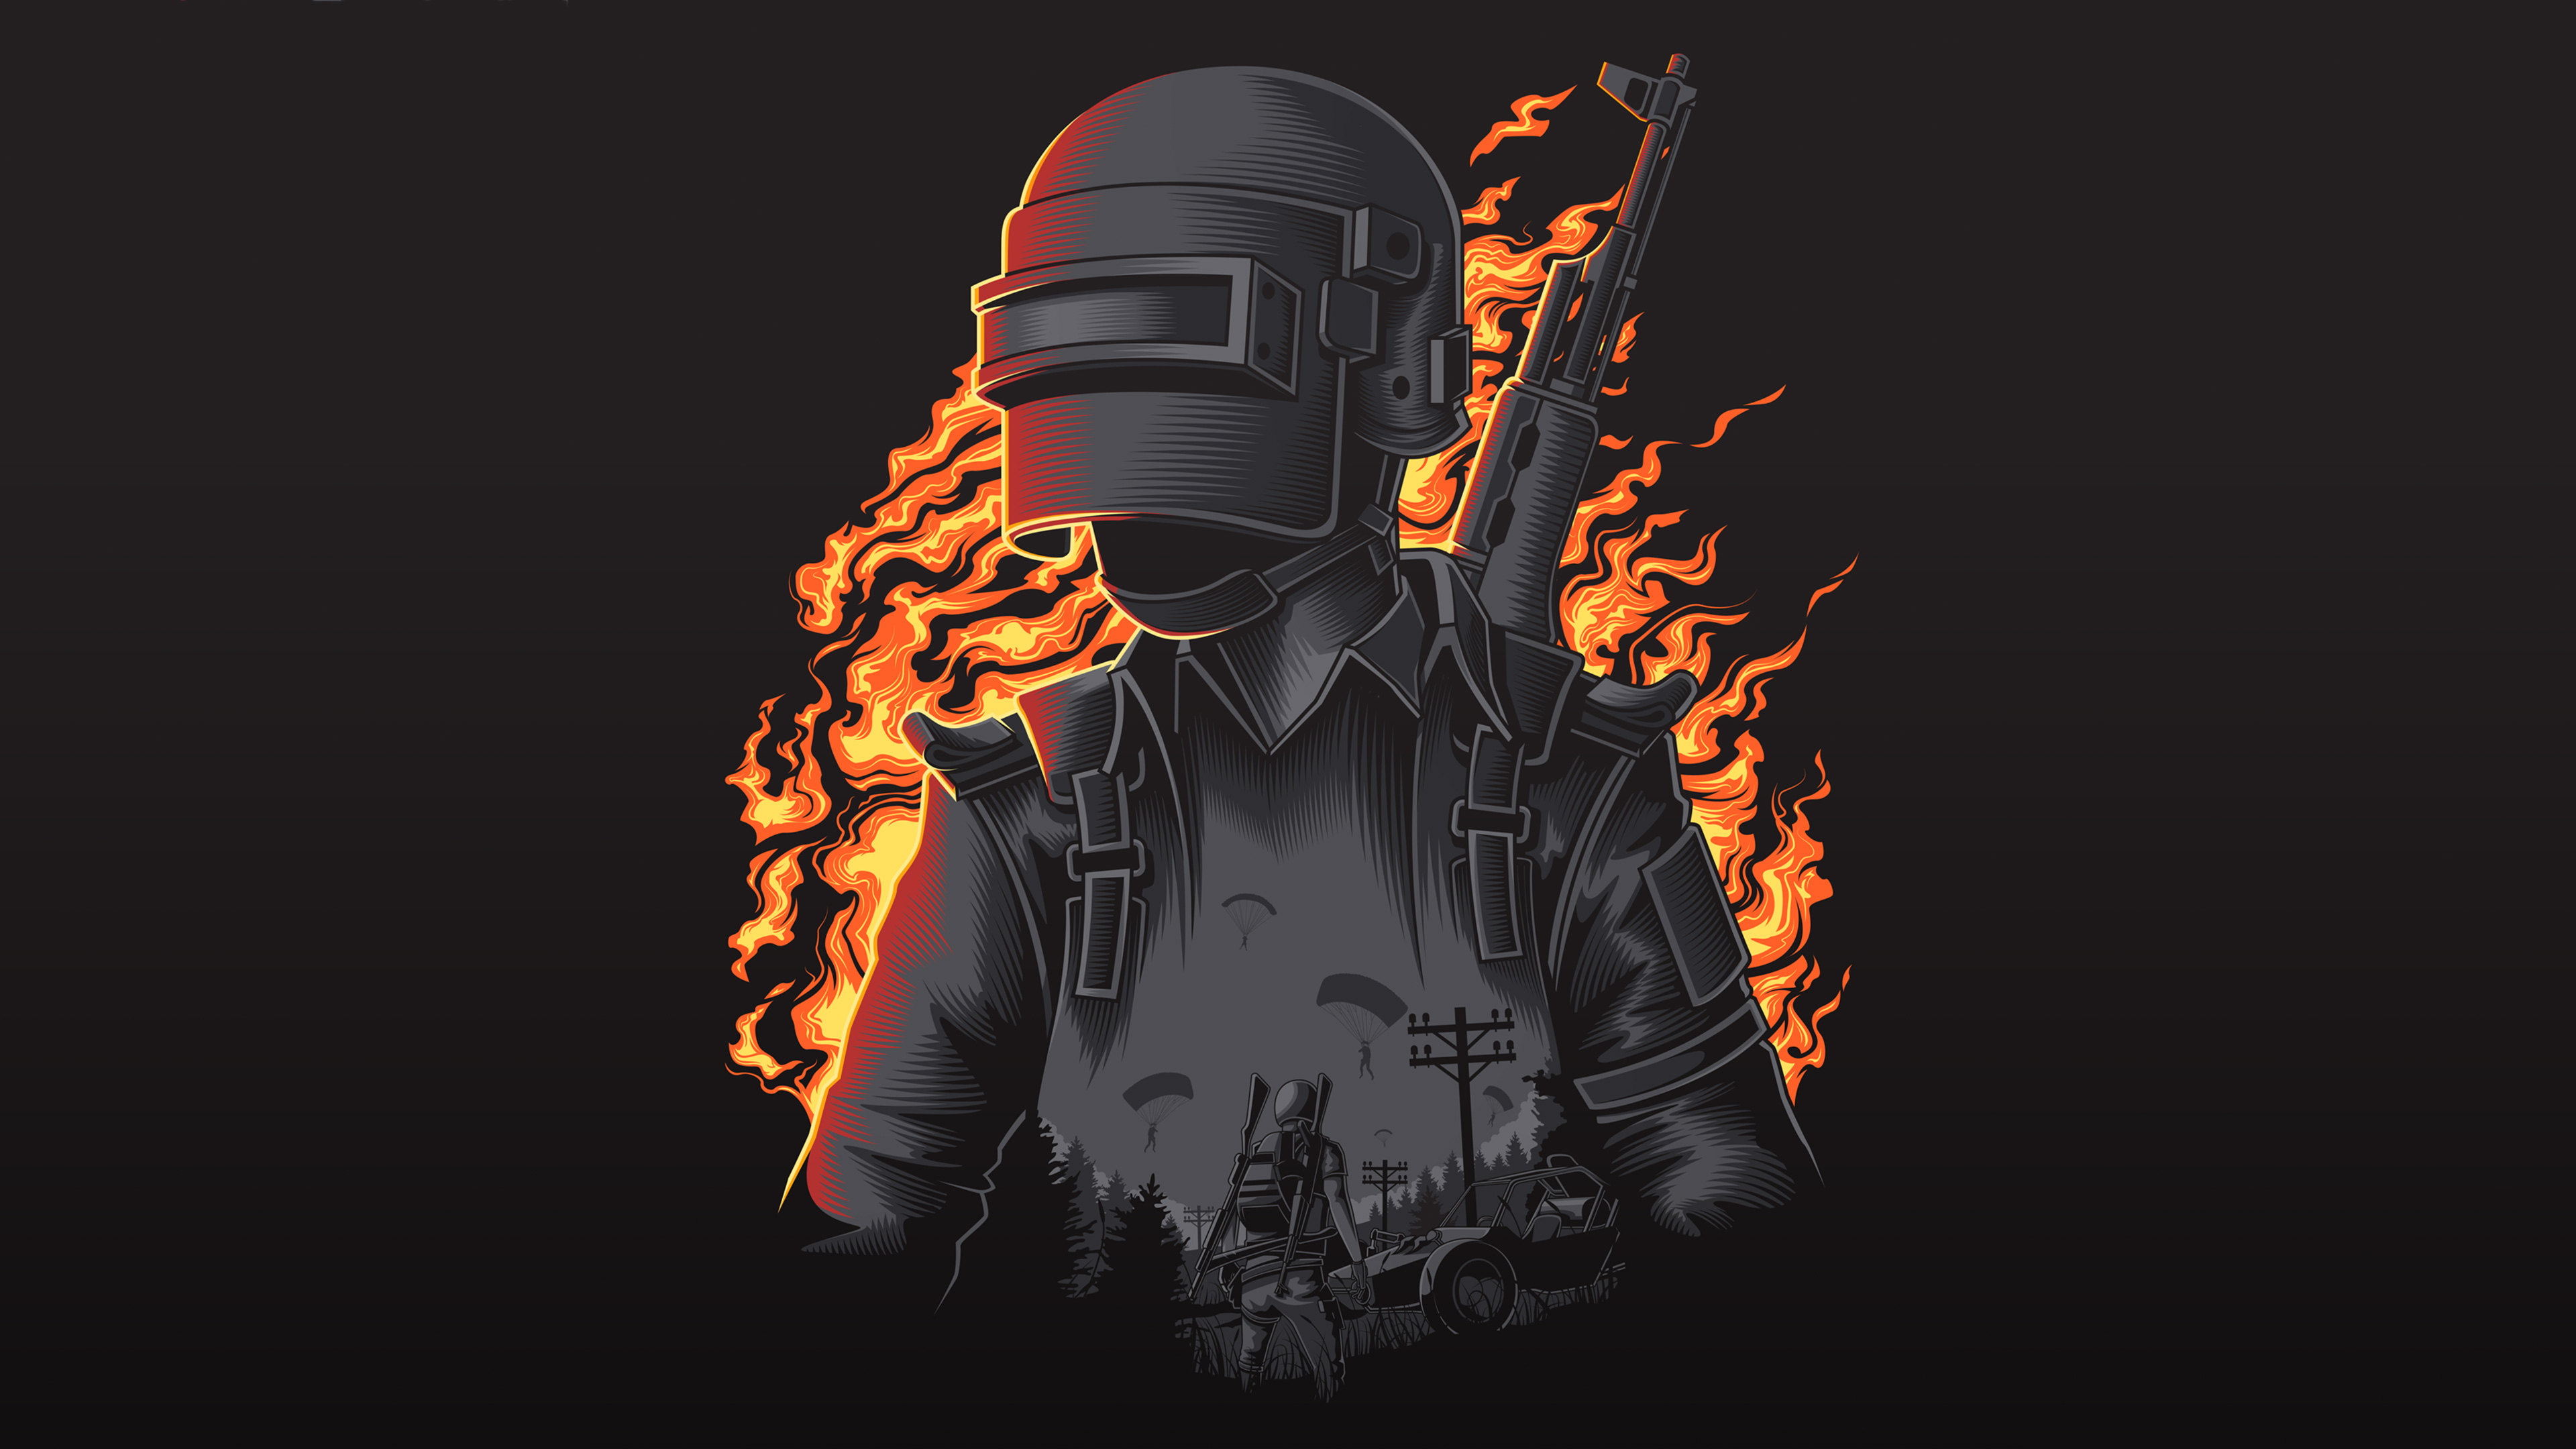 Pubg Artwork Wallpapers: Pubg Illustration 4k, HD Games, 4k Wallpapers, Images